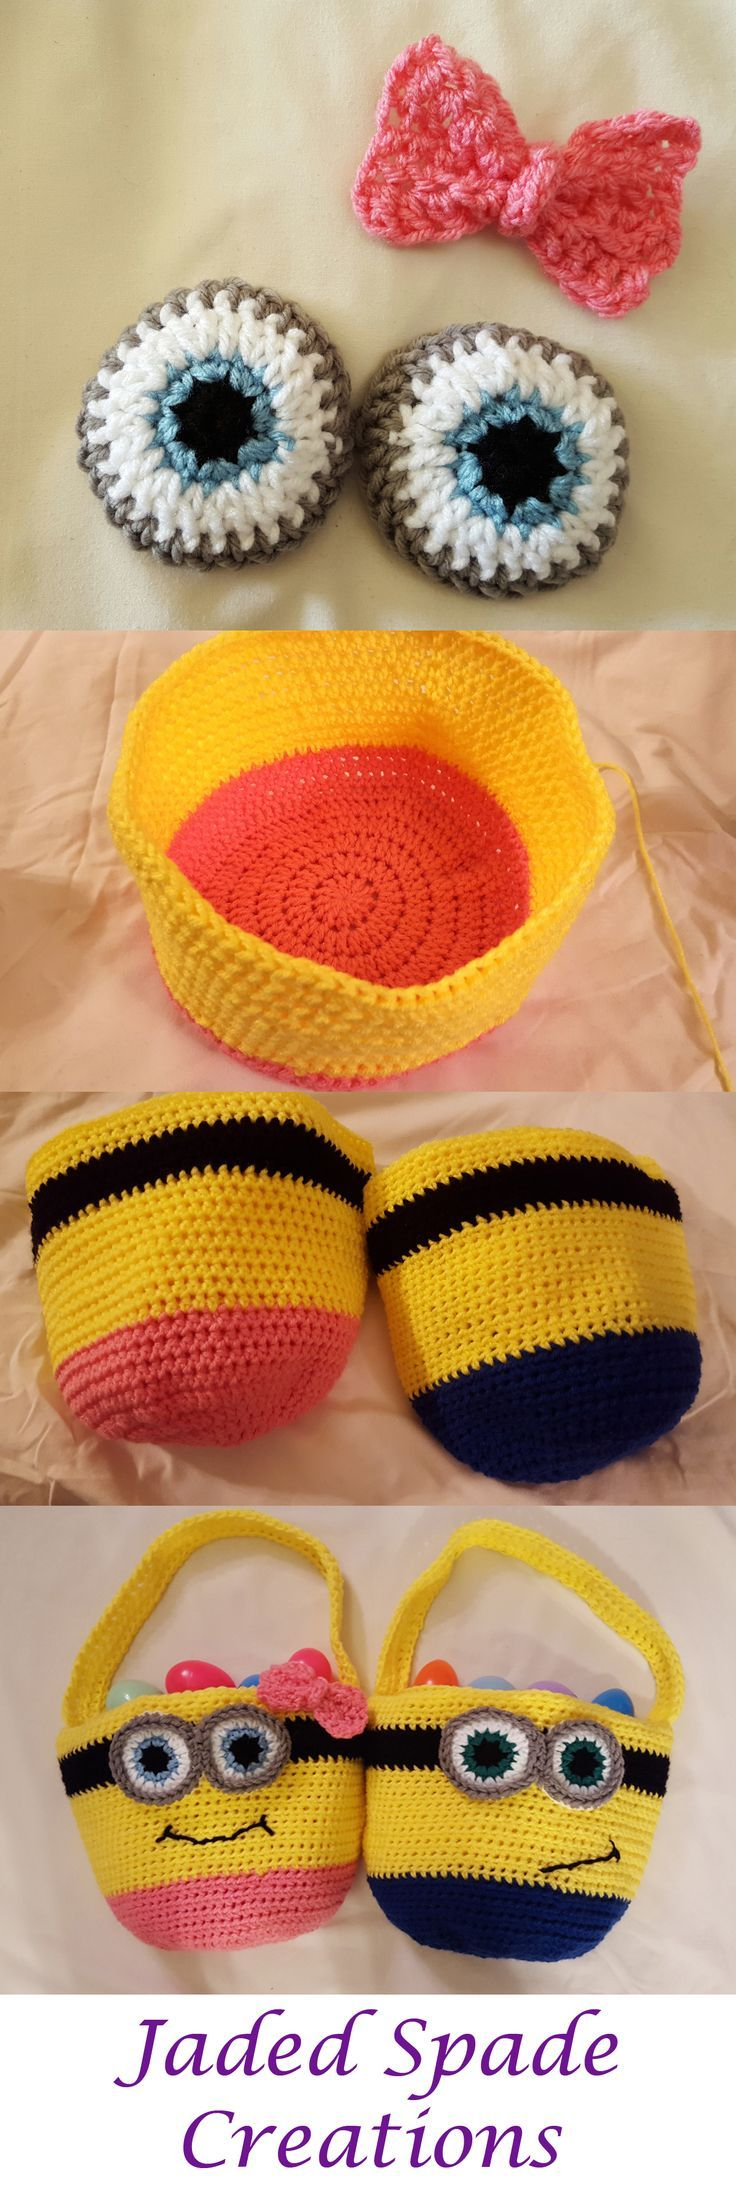 Crochet Pattern Minion Crochet Easter Basket Pattern Boy or Girl Options Now in Two Sizes,  #... #minioncrochetpatterns